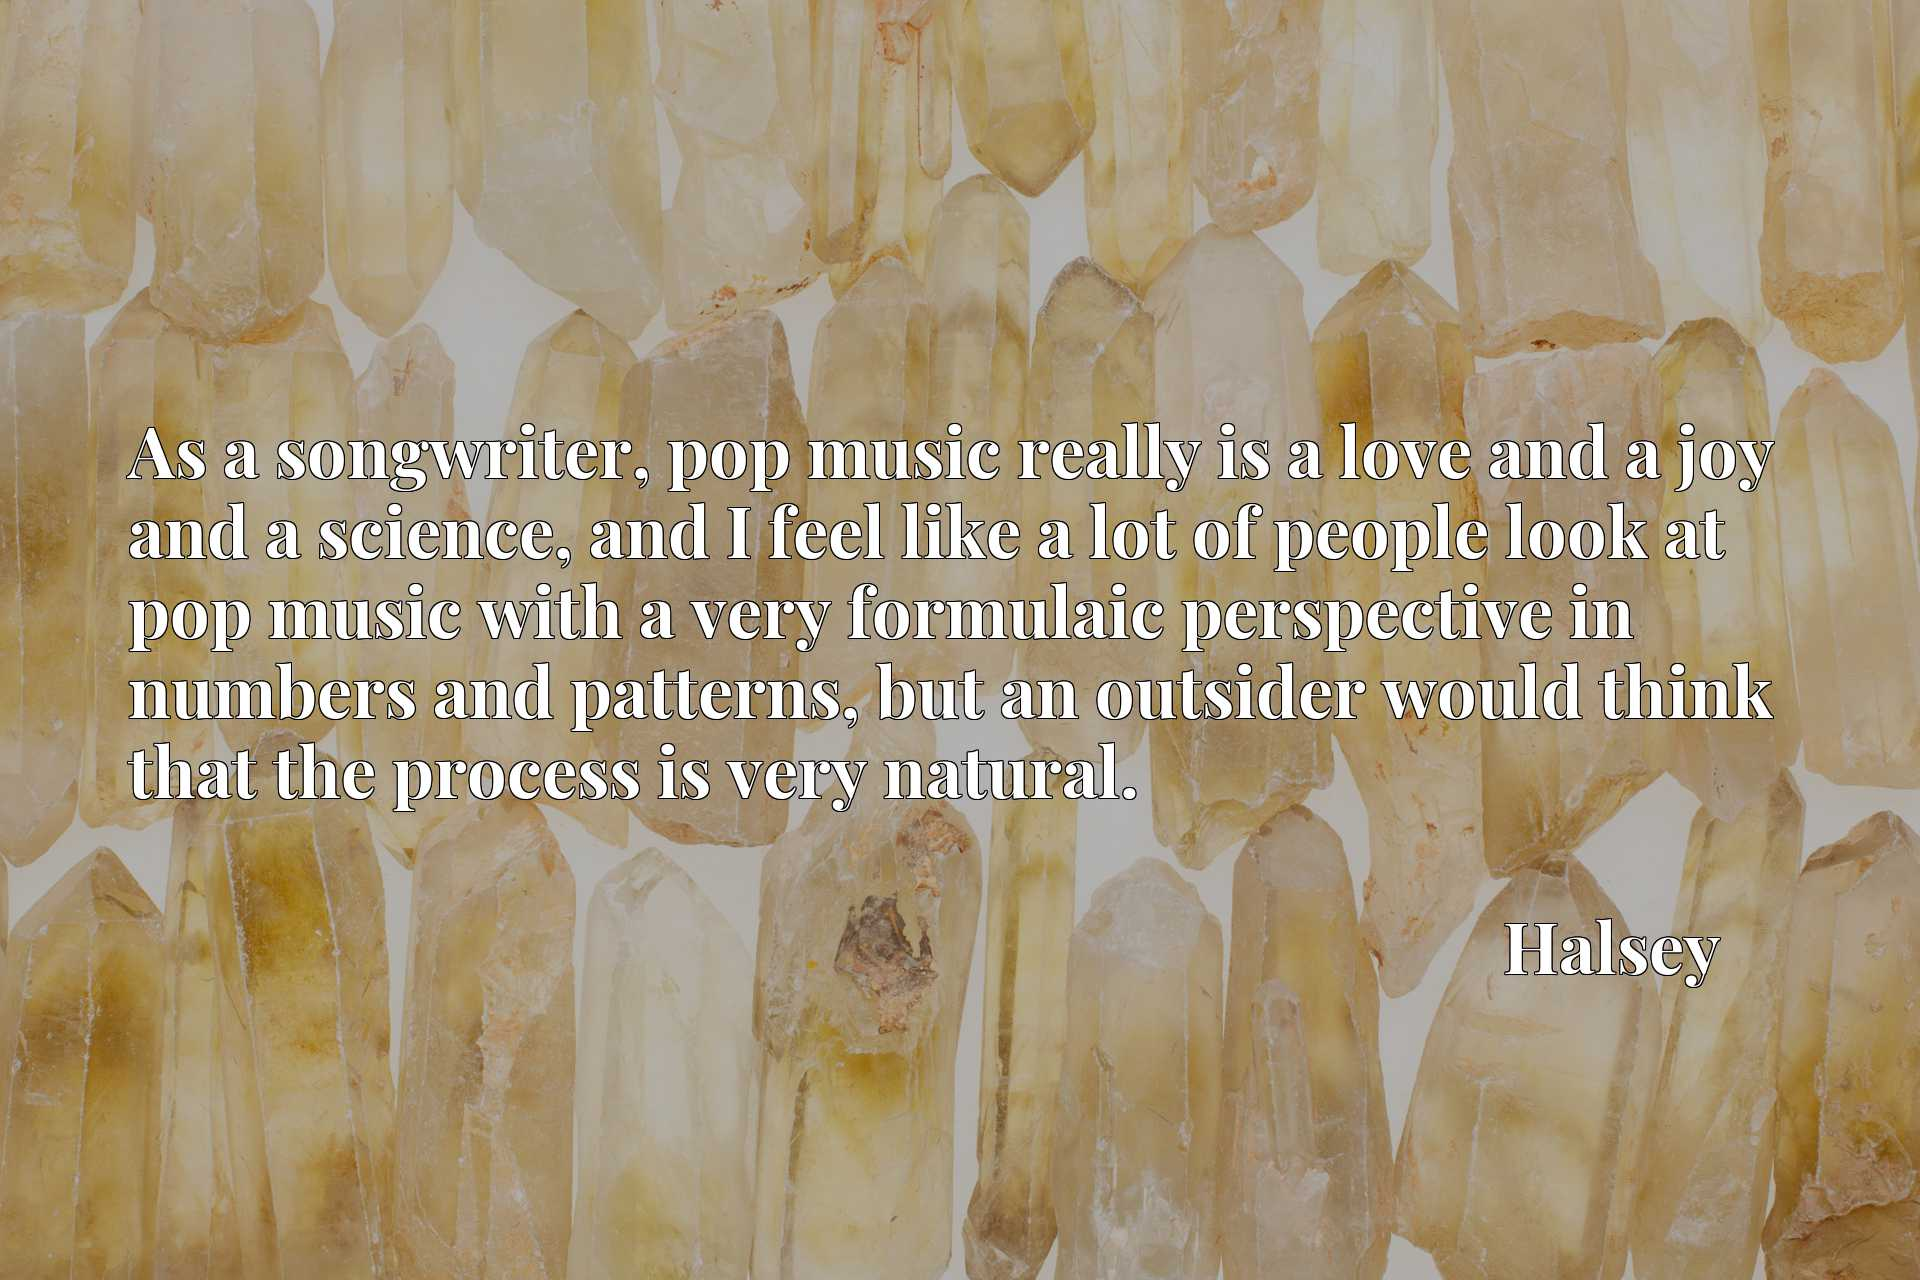 As a songwriter, pop music really is a love and a joy and a science, and I feel like a lot of people look at pop music with a very formulaic perspective in numbers and patterns, but an outsider would think that the process is very natural.